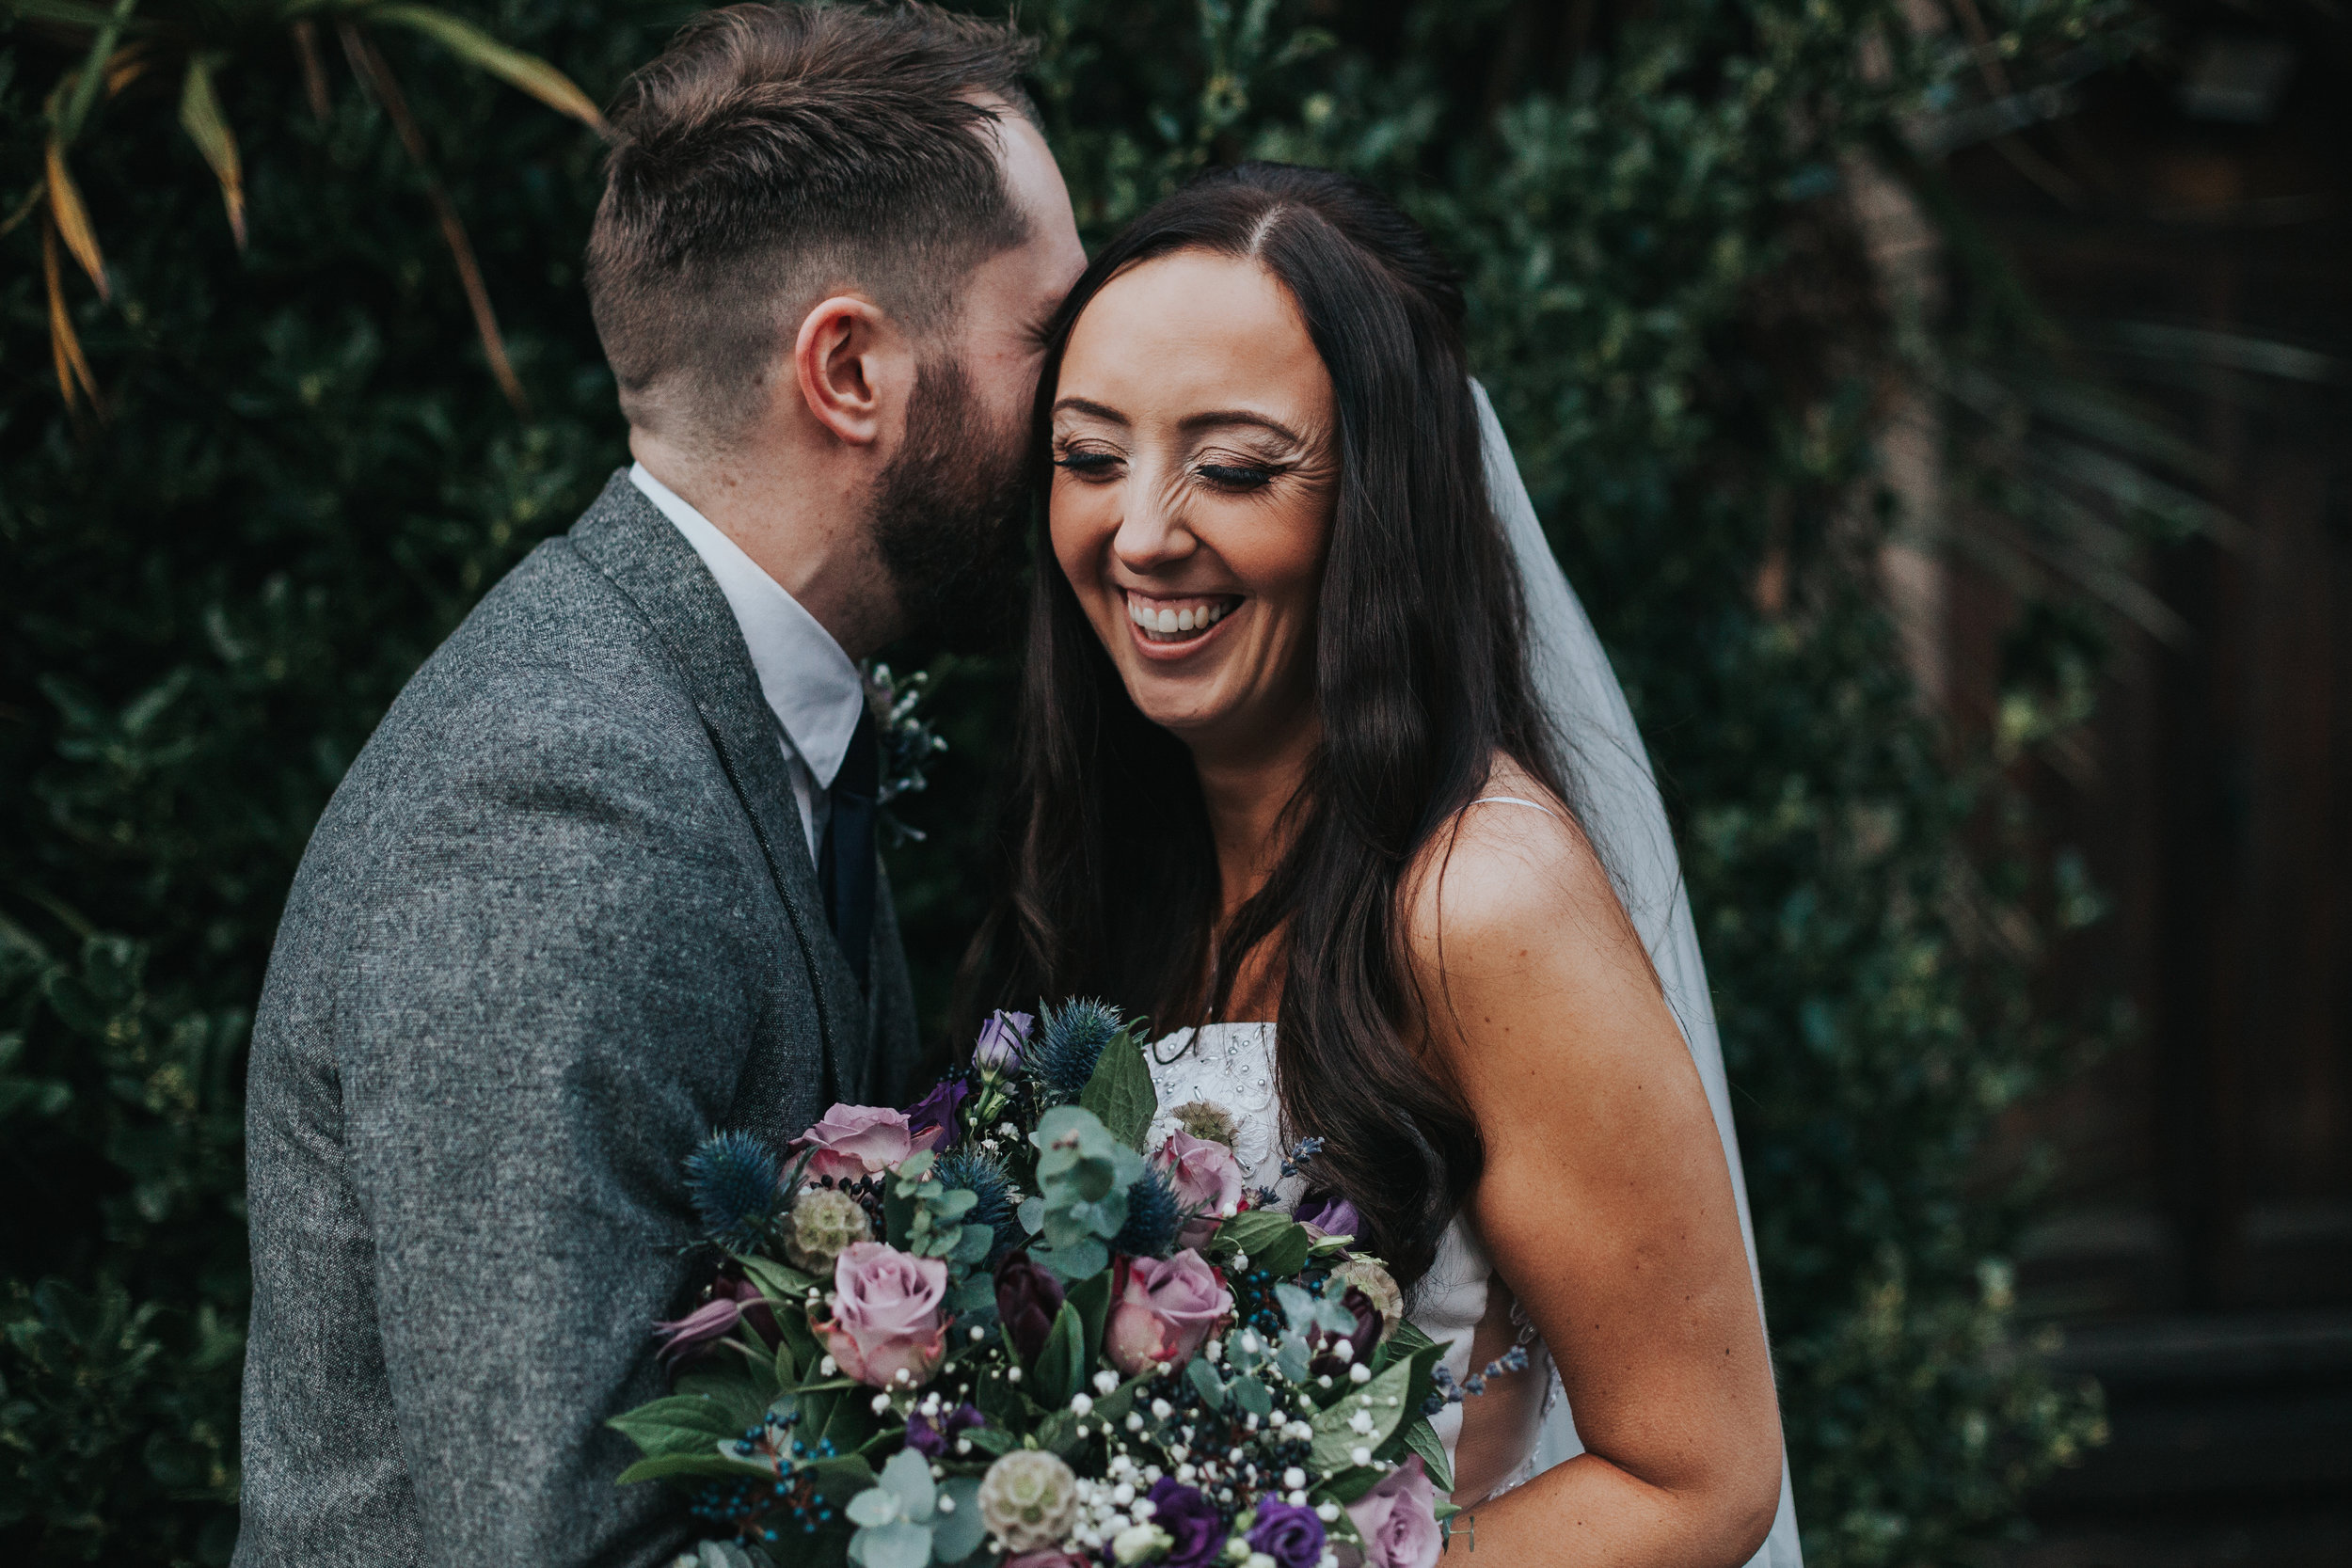 Bride Laughs and Groom Whispers in her ear